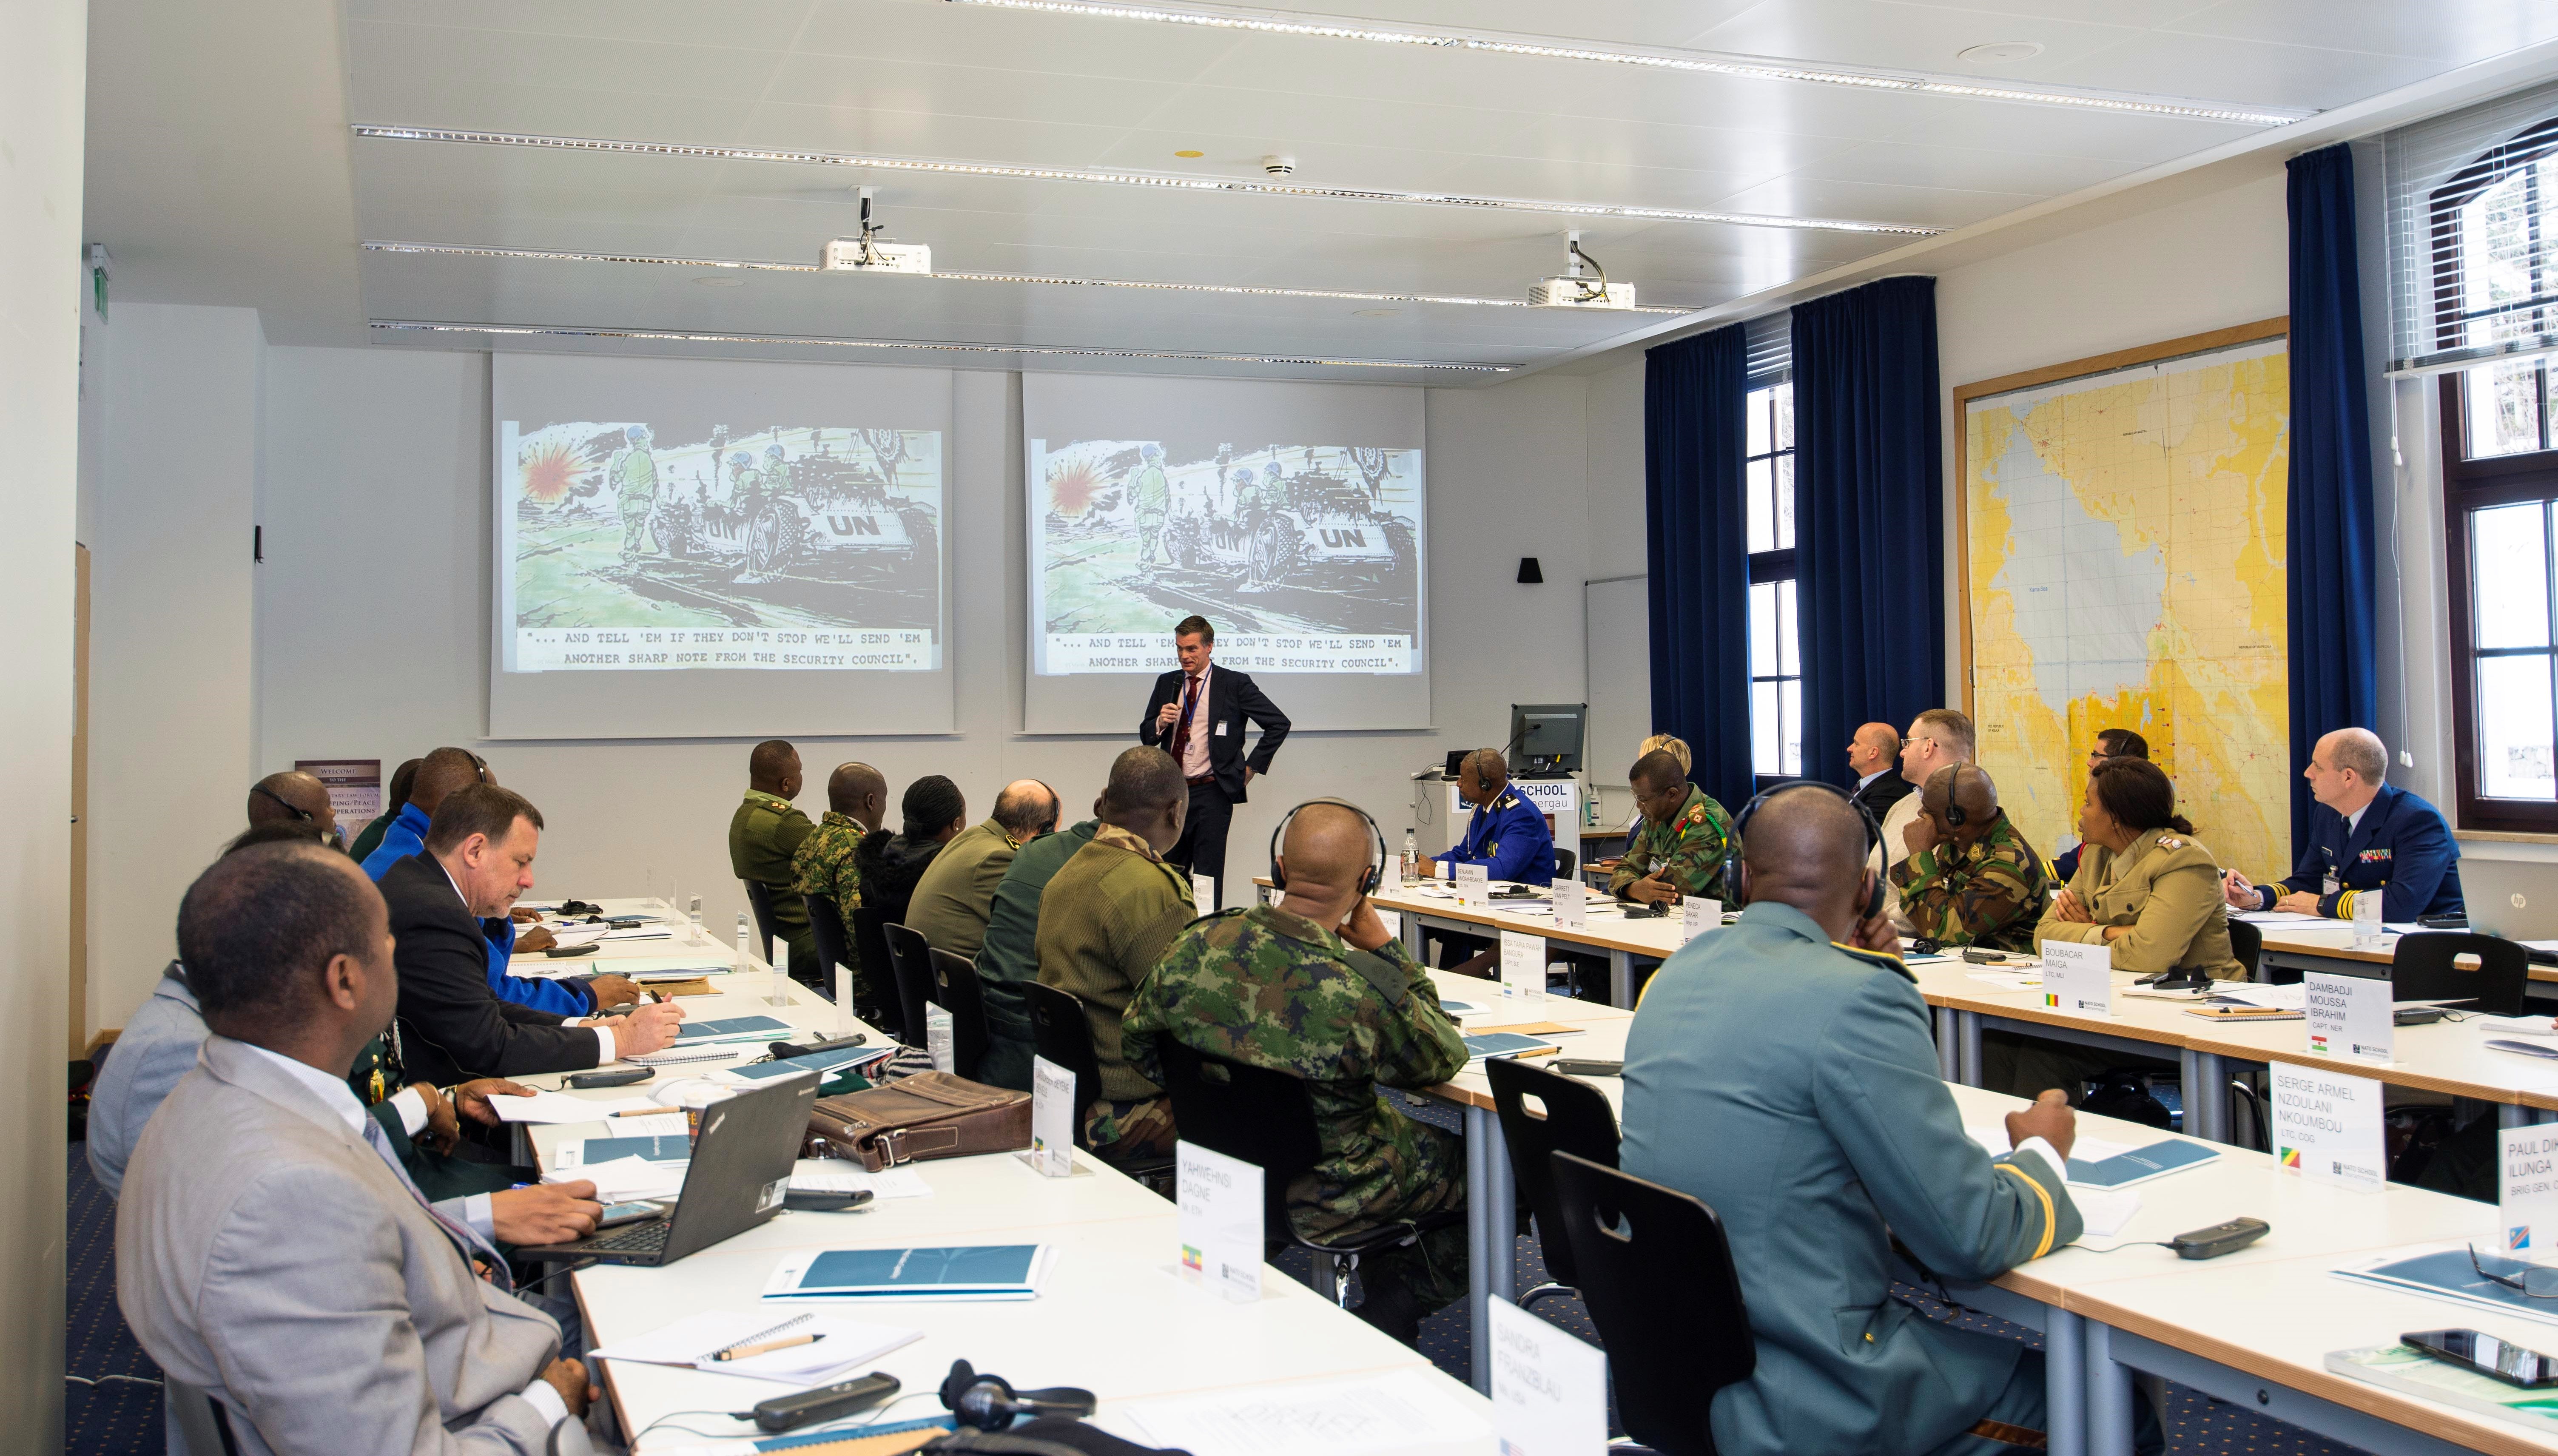 Col. (ret.) Benardus Klappe (standing in the background) of the Military Law and Law of War Society, delivers a presentation on investigations within the peace operations context, with a focus on protection of civilian mandates, Oberammergau, Germany, March 1, 2018. (Photo by Cpl. Victor Leonard, NATO School Public Affairs/Released)